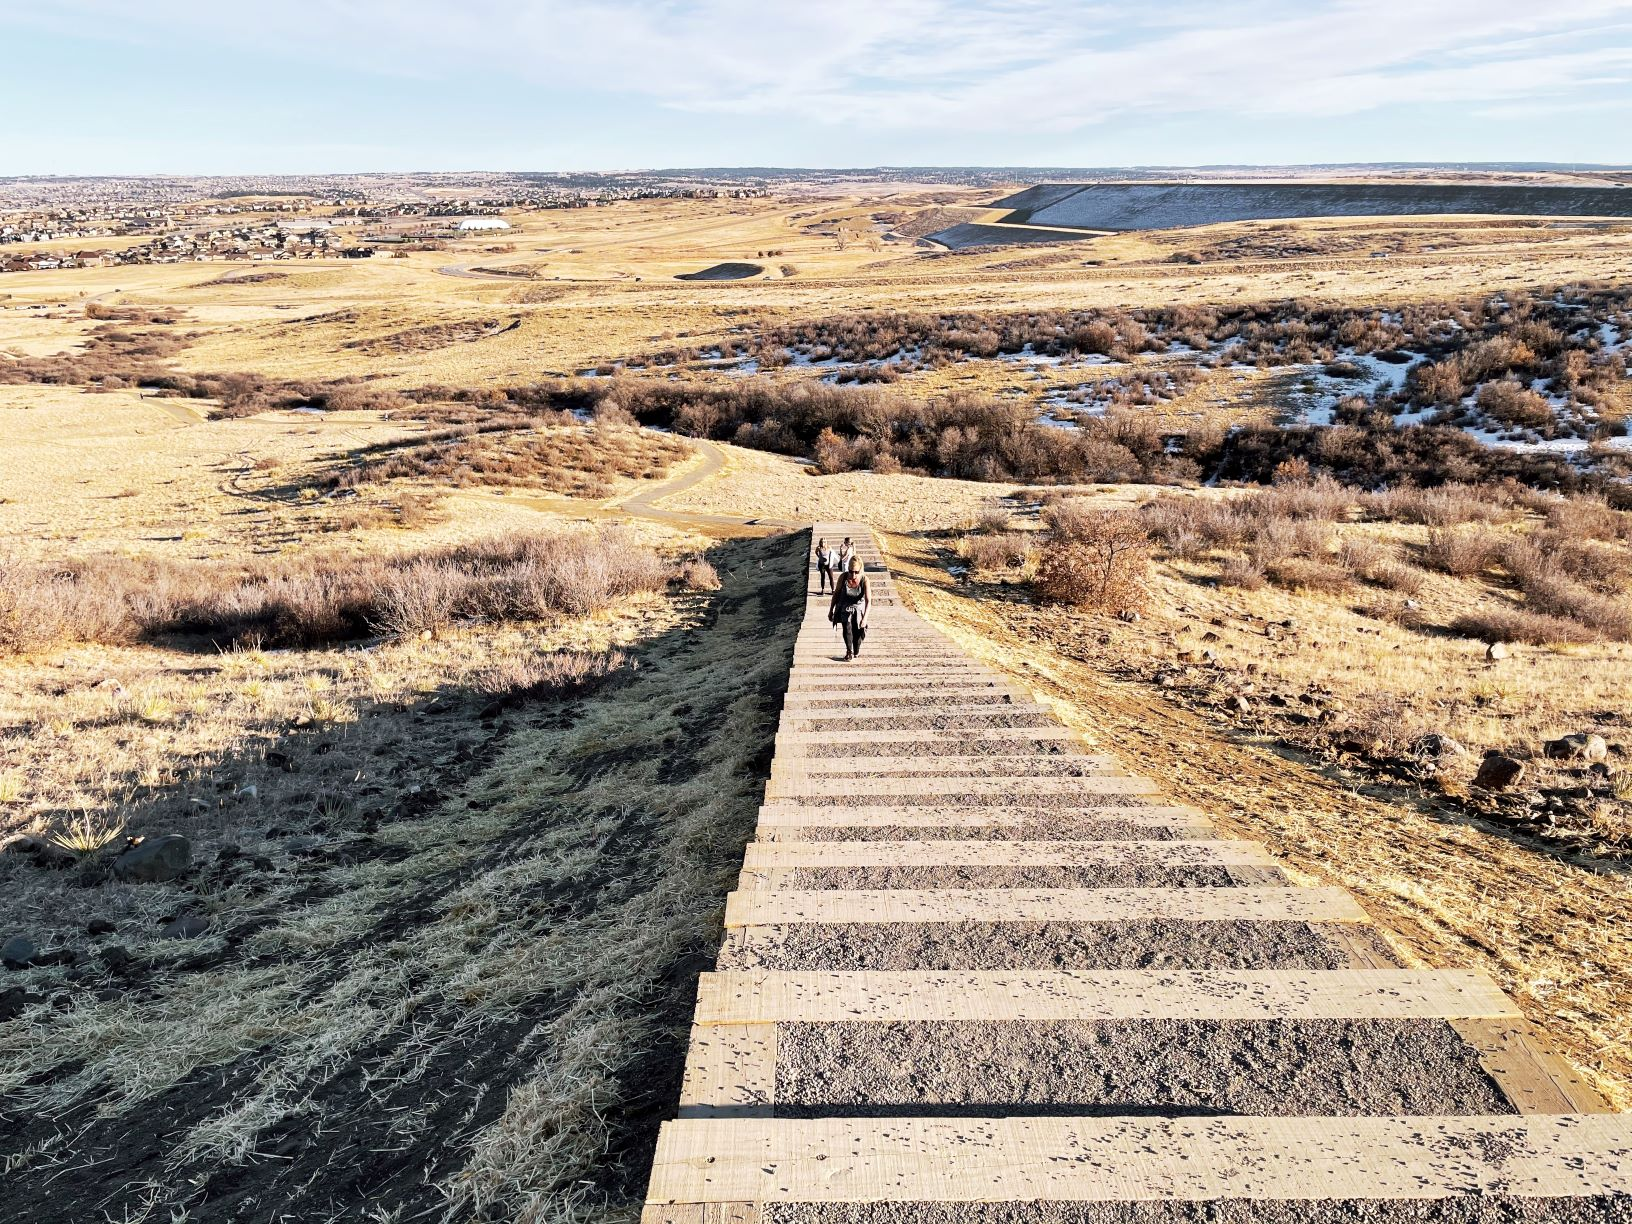 Rueter-Hess Incline, Rueter-Hess Reservoir, Jessica Hughes, Denver metro parks, Parker Colorado, trails near Denver